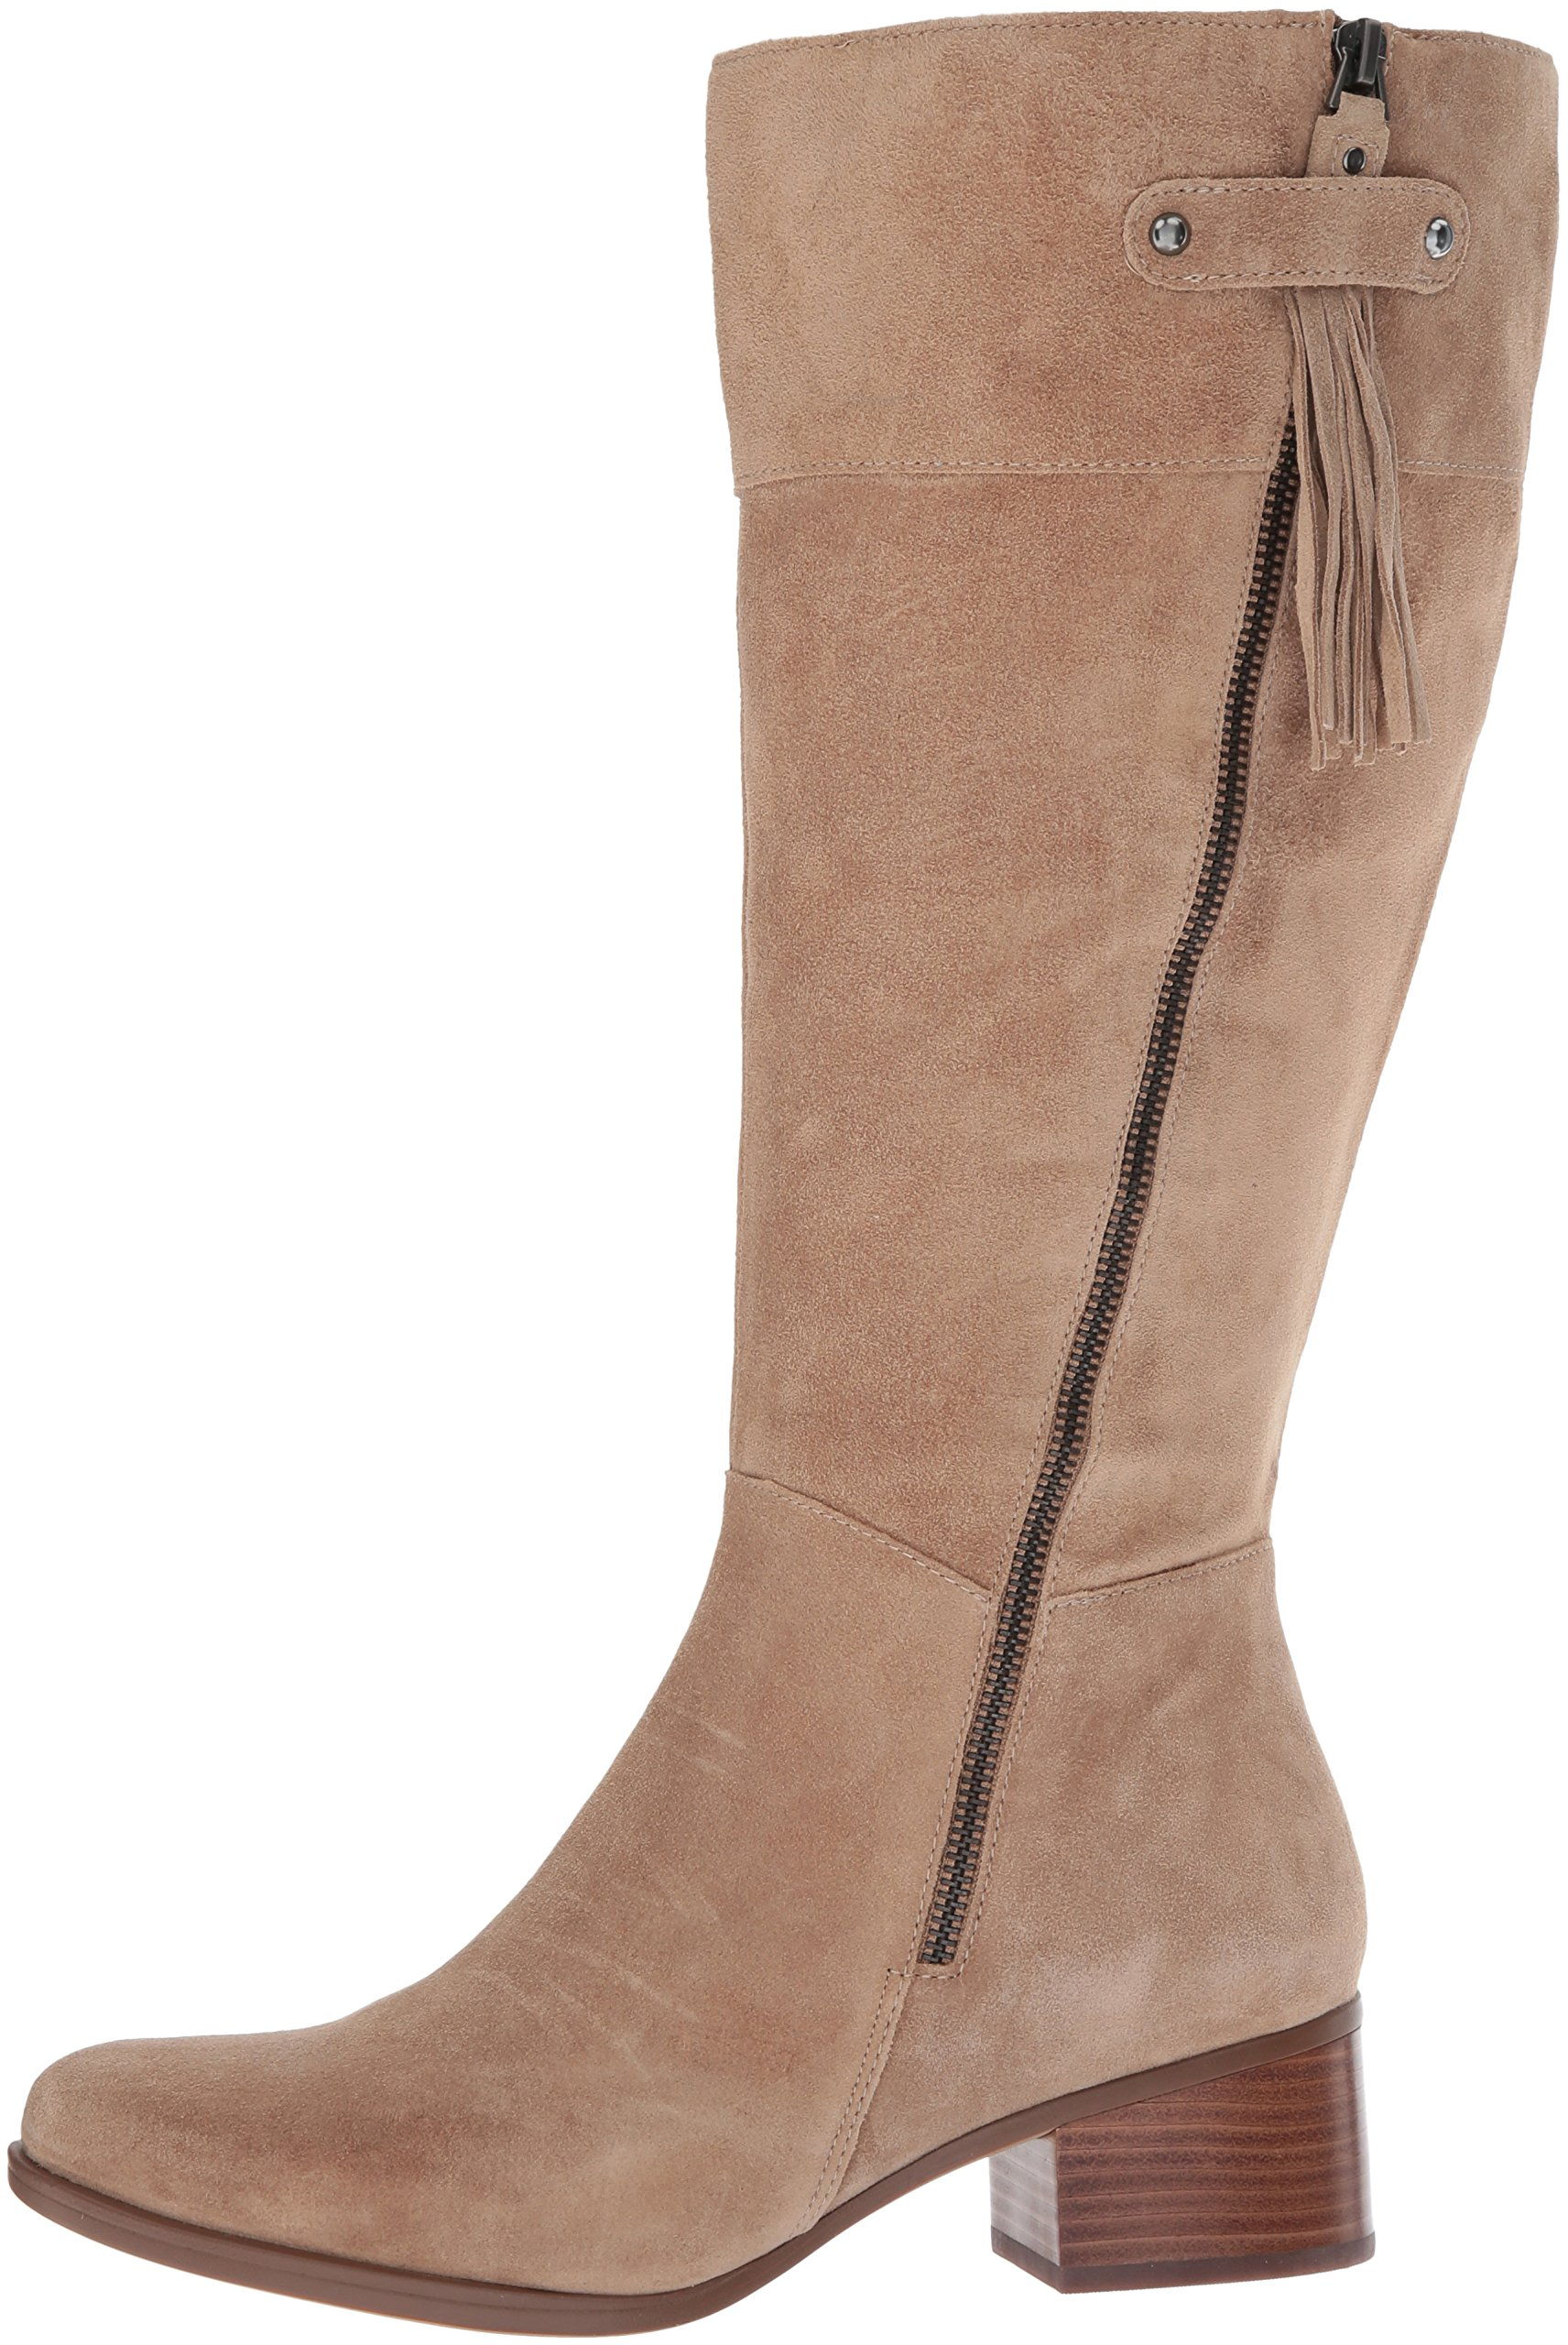 Naturalizer Women's Demi Wc Riding Boot, Oatmeal, 9 M US by Naturalizer (Image #5)